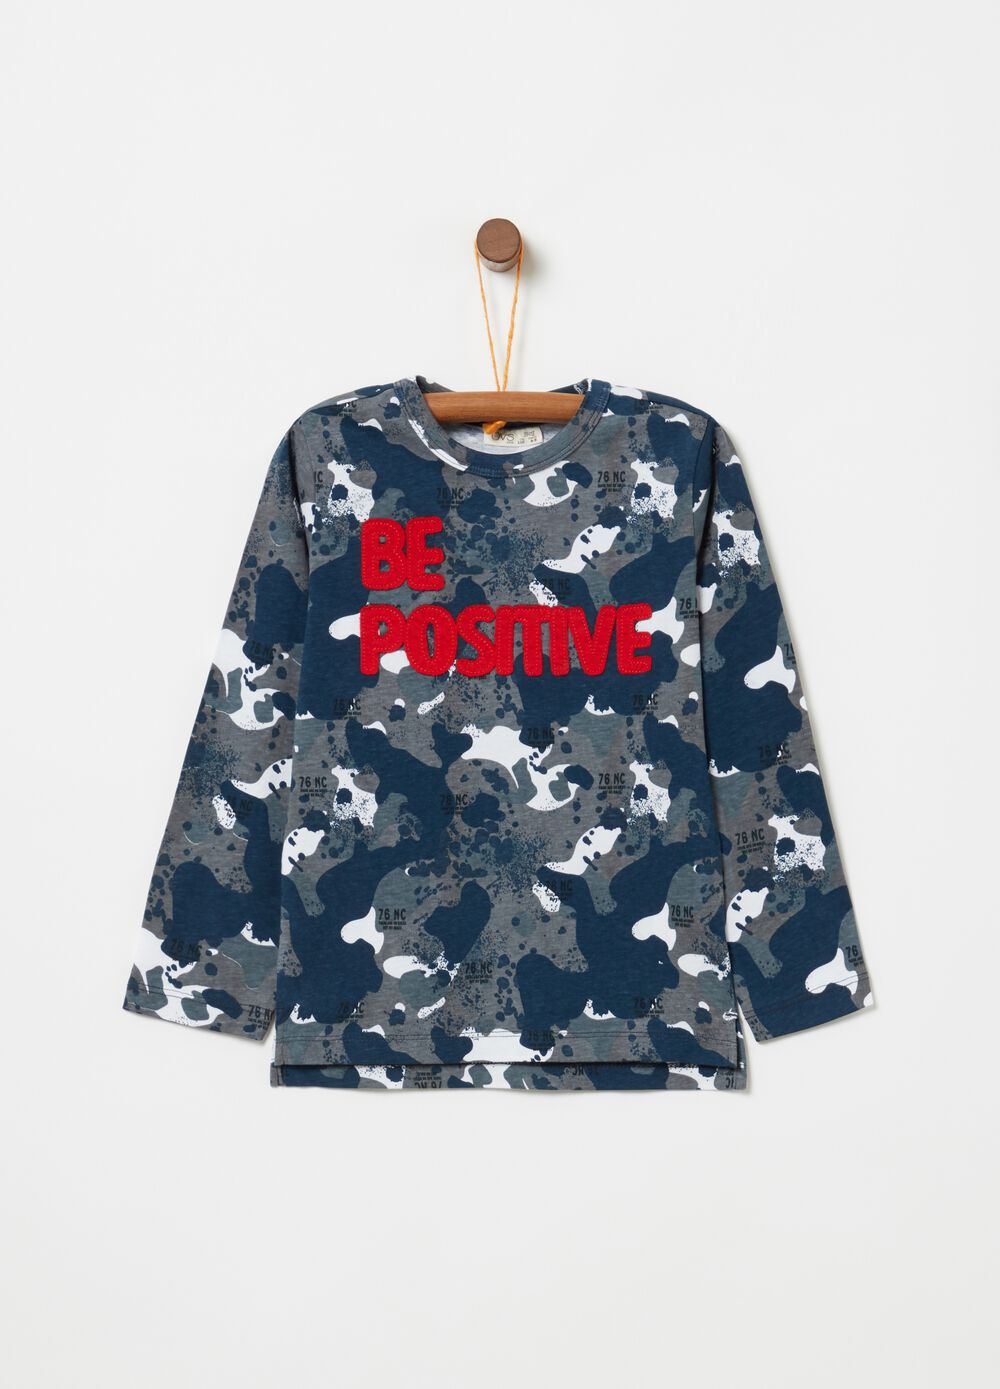 100% cotton T-shirt with camouflage pattern